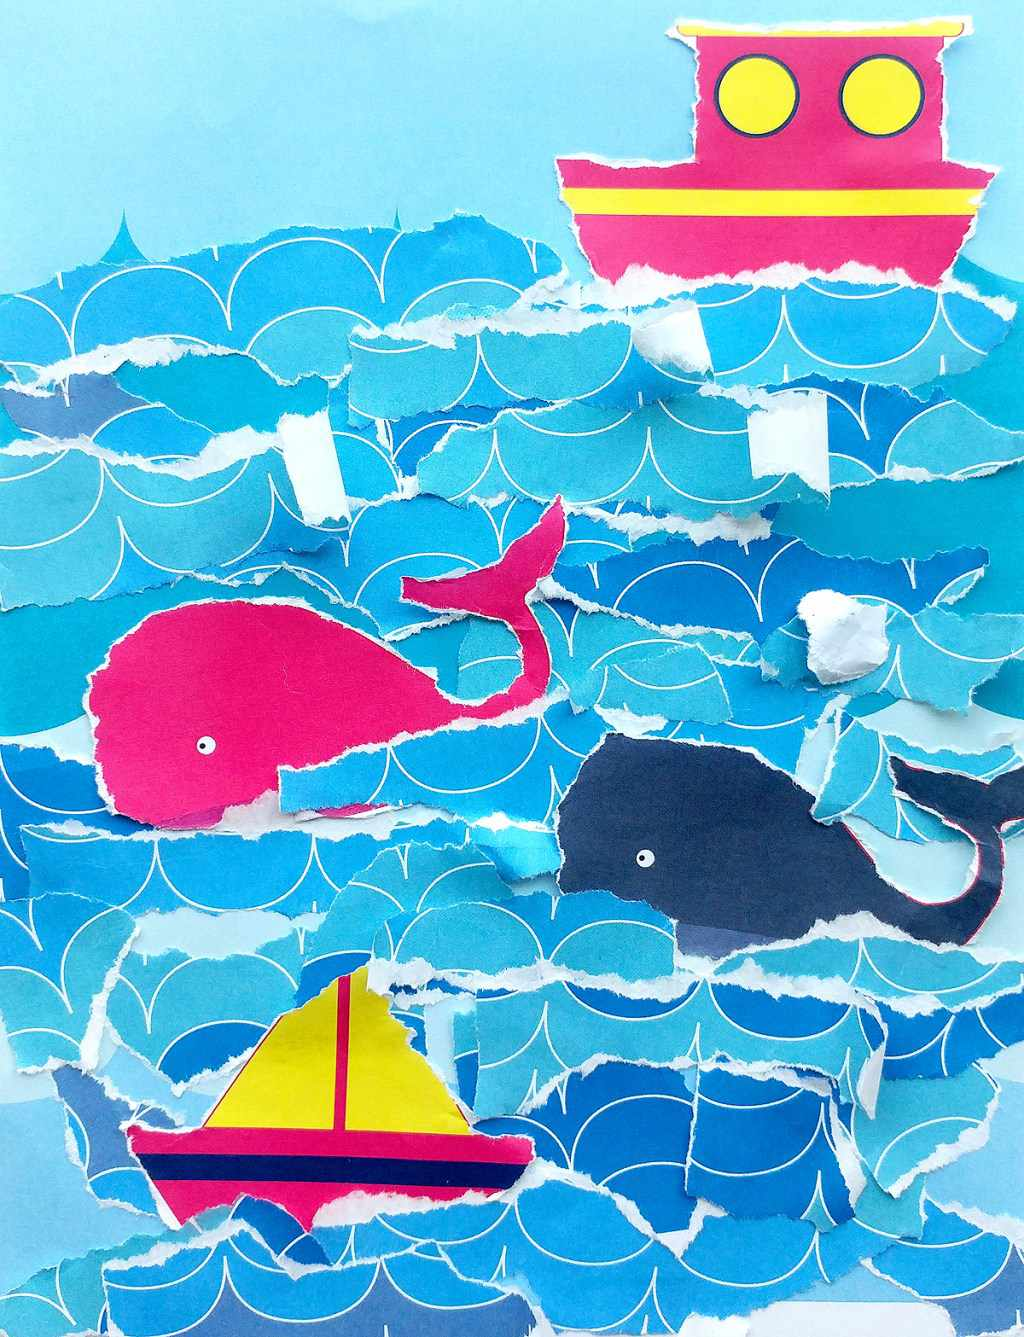 Close up of boat whale and ocean collage